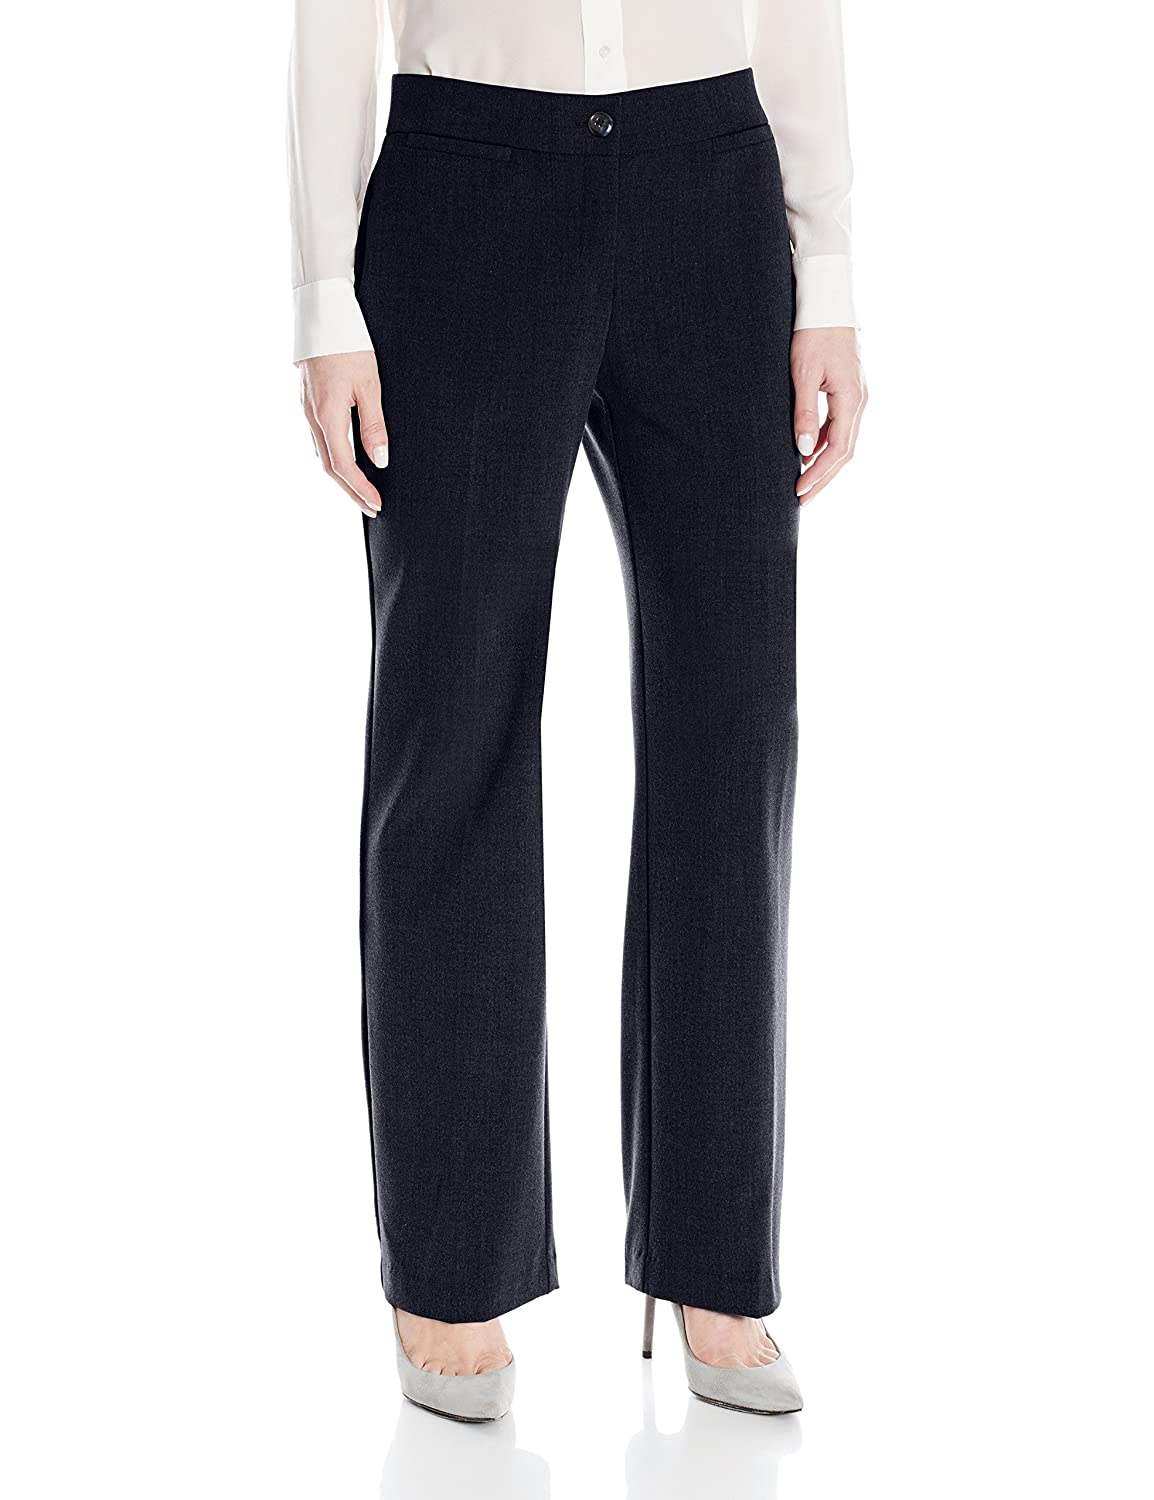 Briggs New York Women's Petite Straight-Leg Pant 248APV1BRR